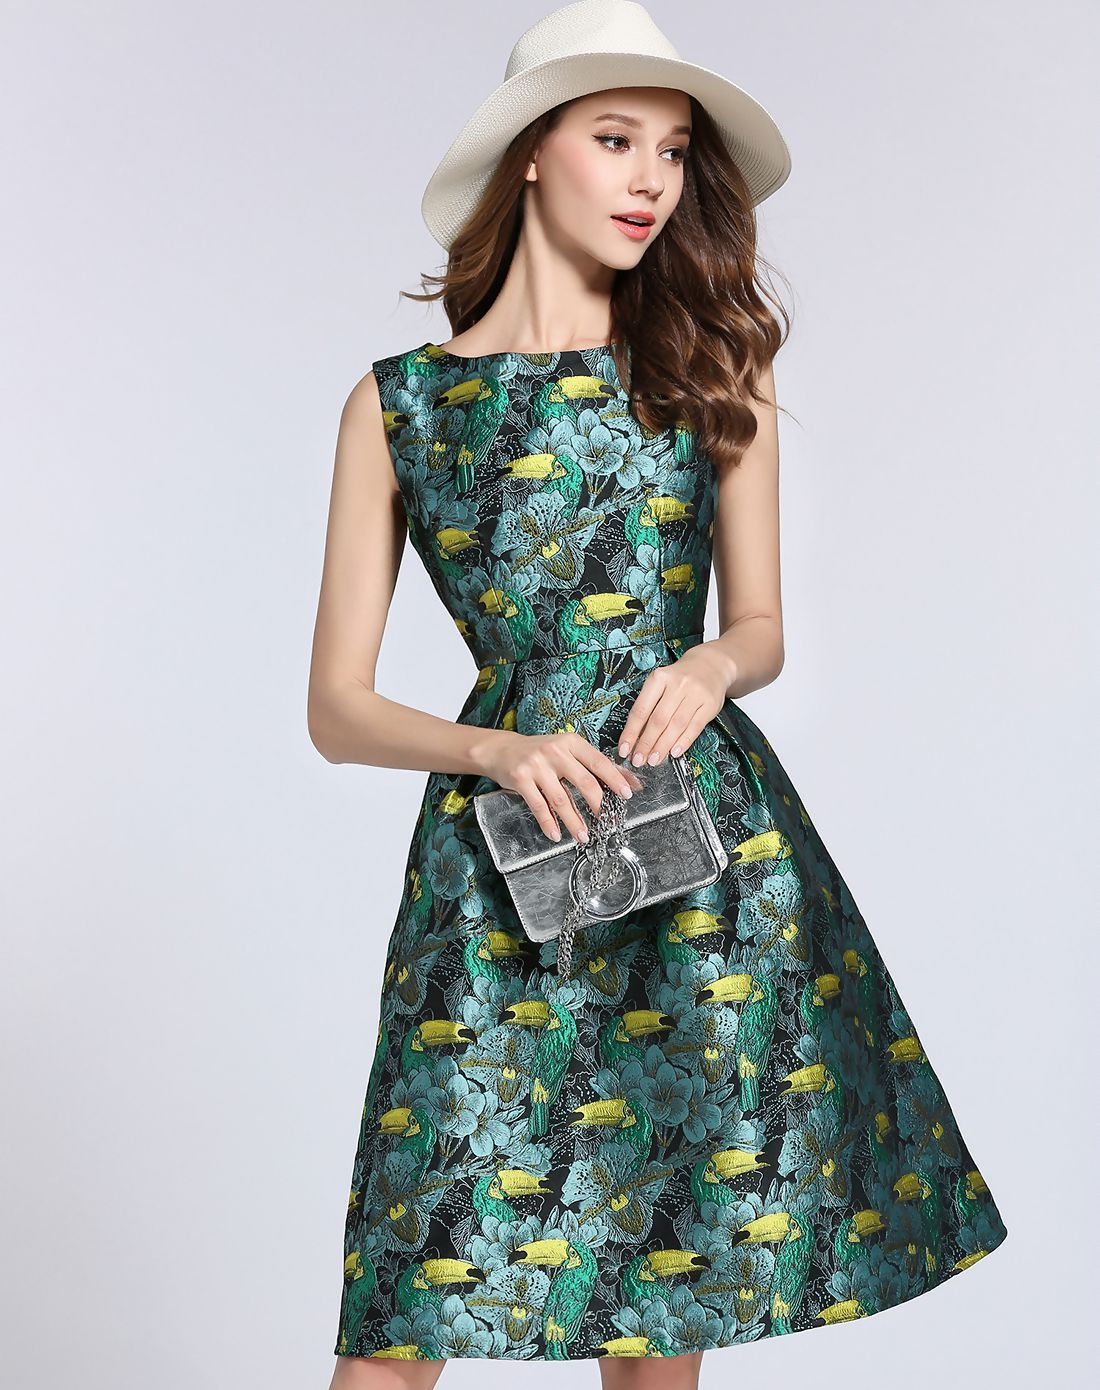 8471f8bfb5d CAGGEEN Pre-sale 9369   2017 new Summer Europe United States famous brand  Long section Women dress Elegant party Jacquard dress